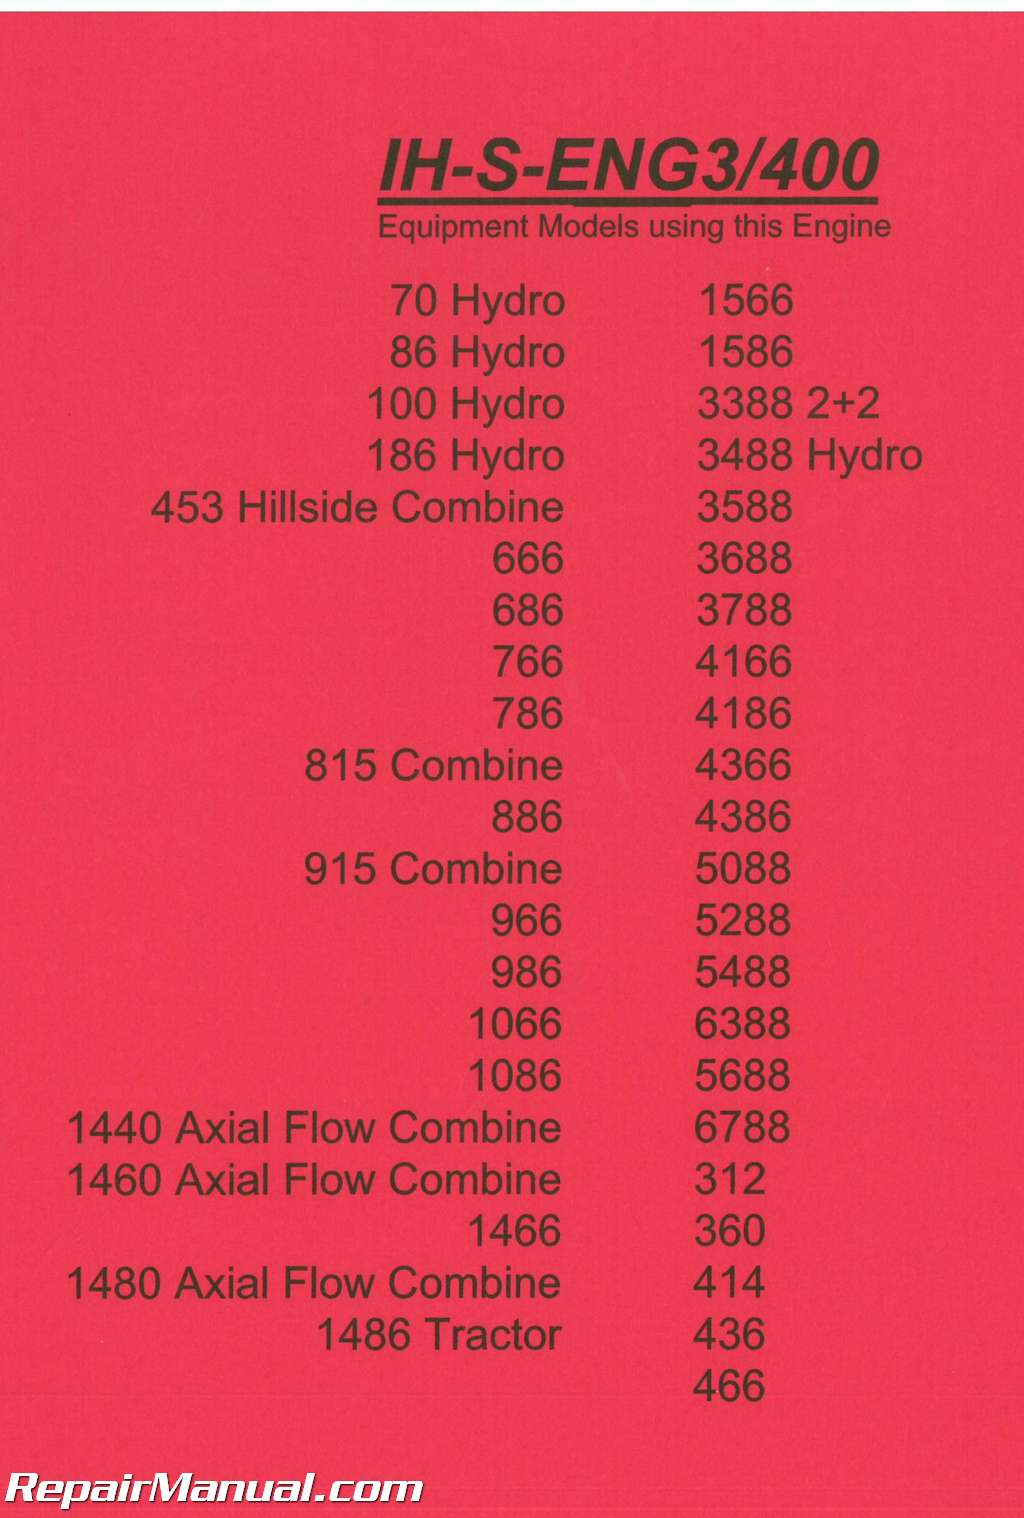 International Harvester 300 and 400 Series Diesel Engines and Fuel Systems  Service Manual